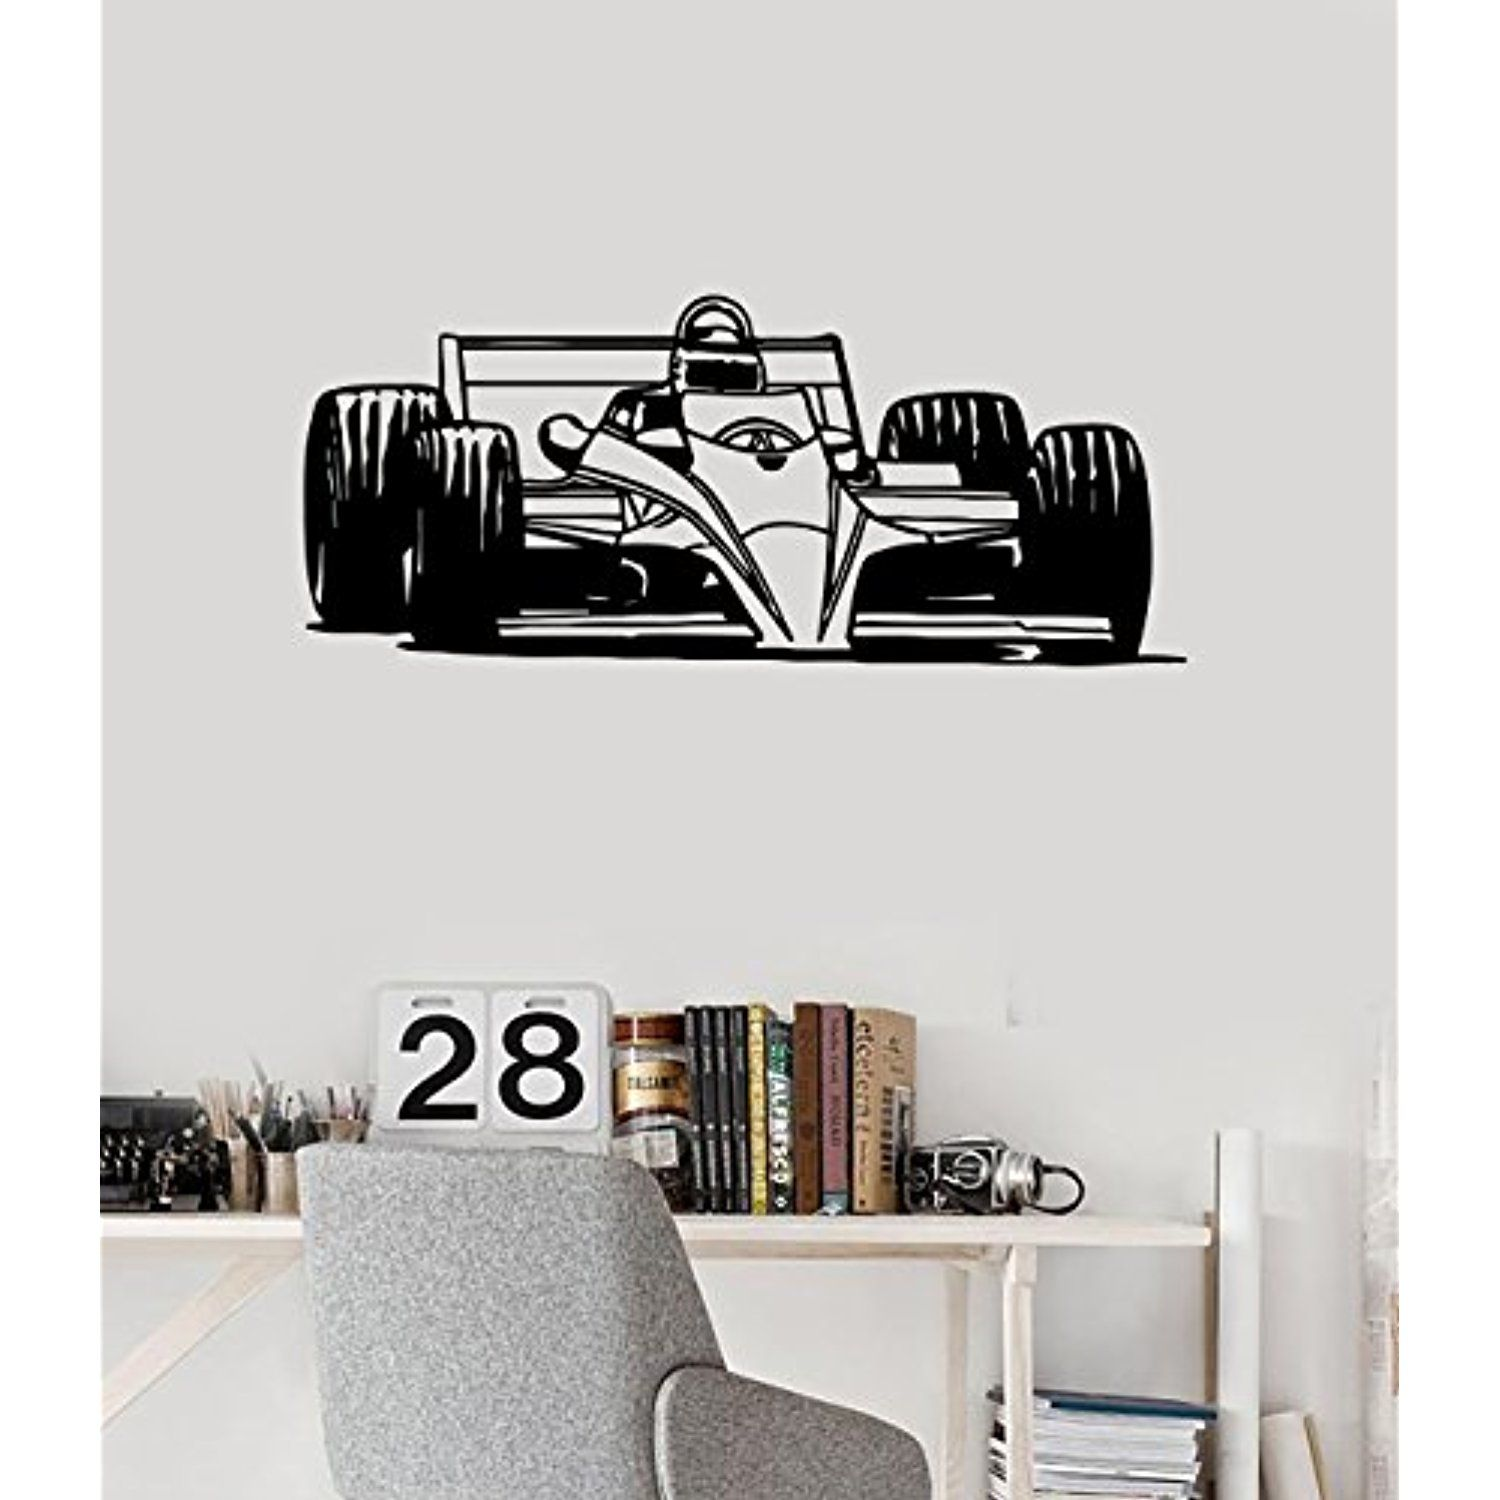 Wall Stickers Vinyl Decal Sports Car Racing Formula 1 Race Car Ig1429 See This Great Product This Is An A Wall Stickers Wall Stickers Murals Vinyl Decals [ 1500 x 1500 Pixel ]